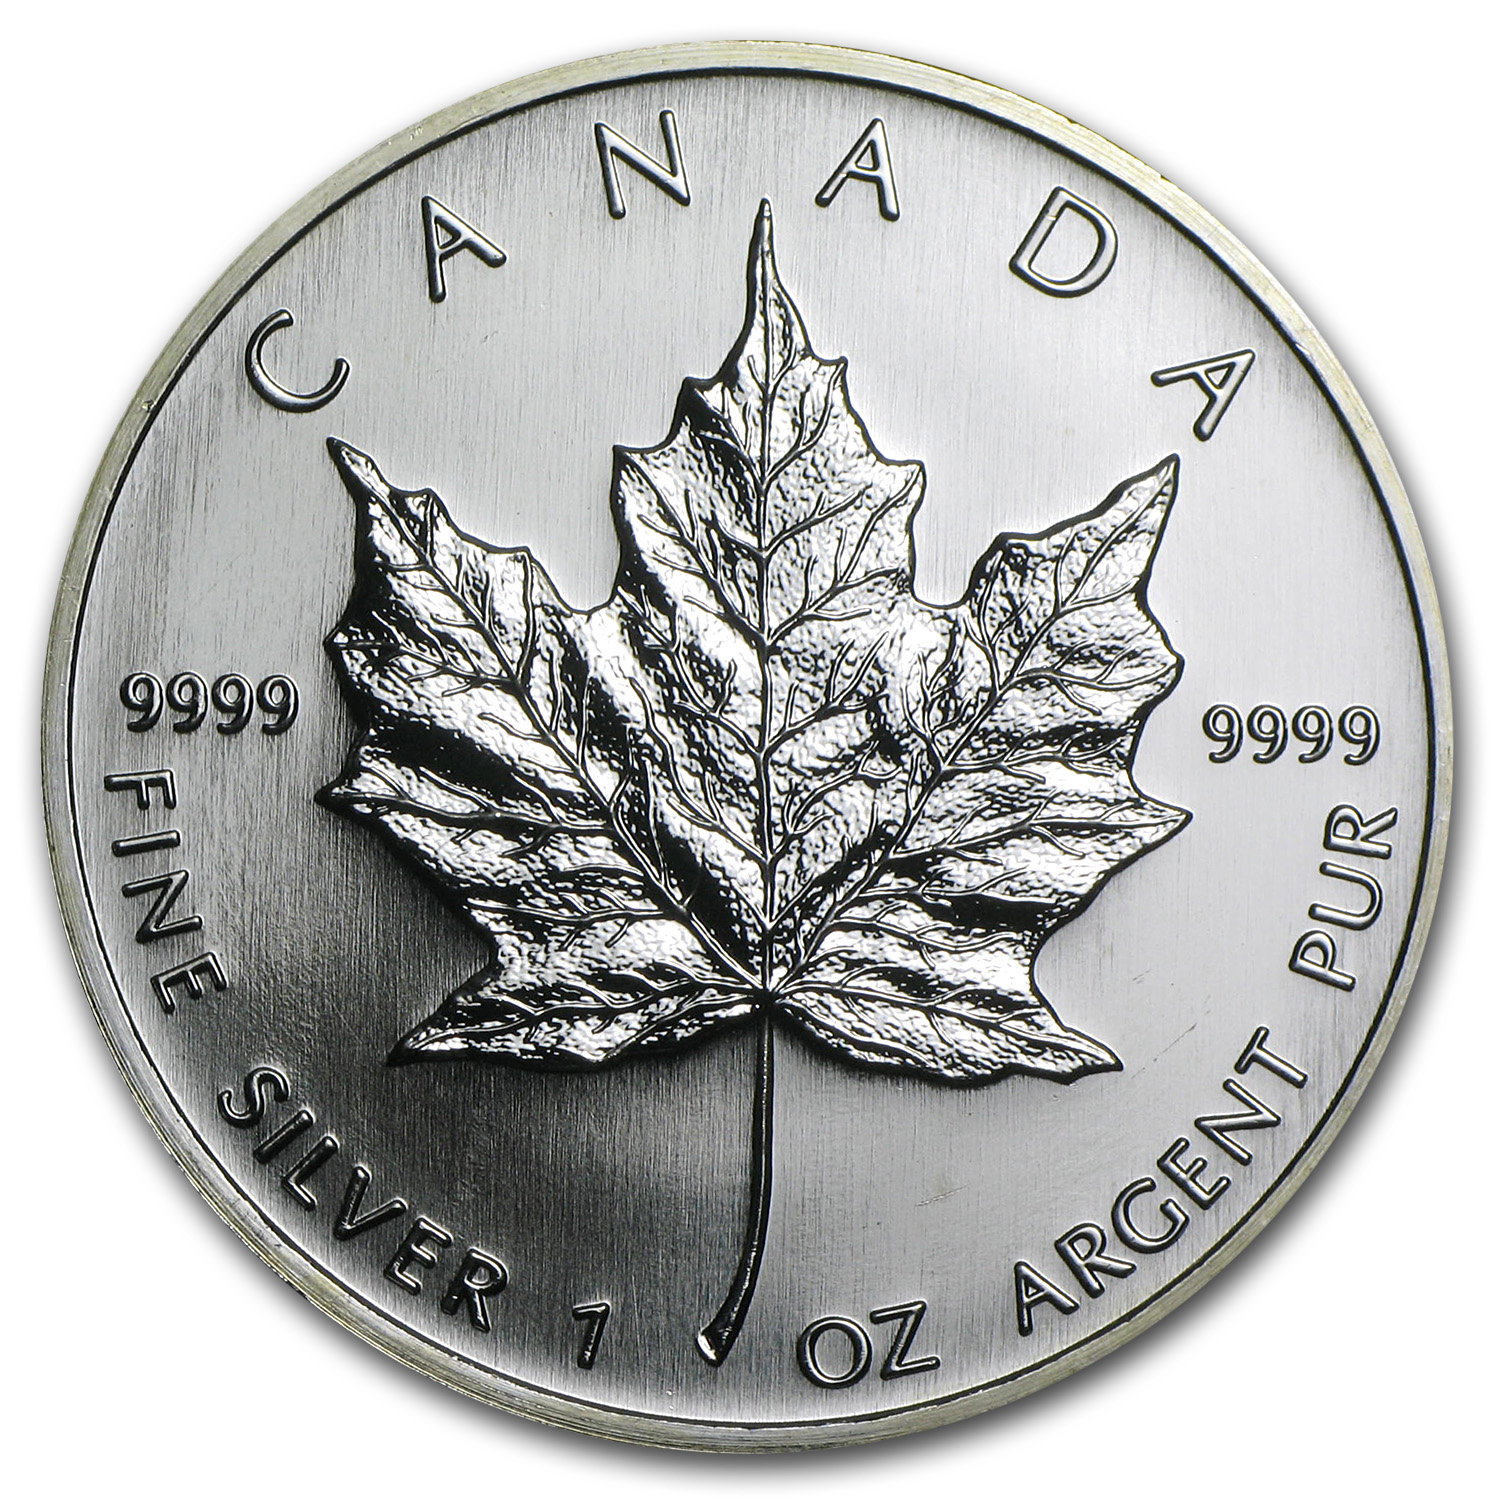 2006 Canada 1 oz Silver Maple Leaf BU